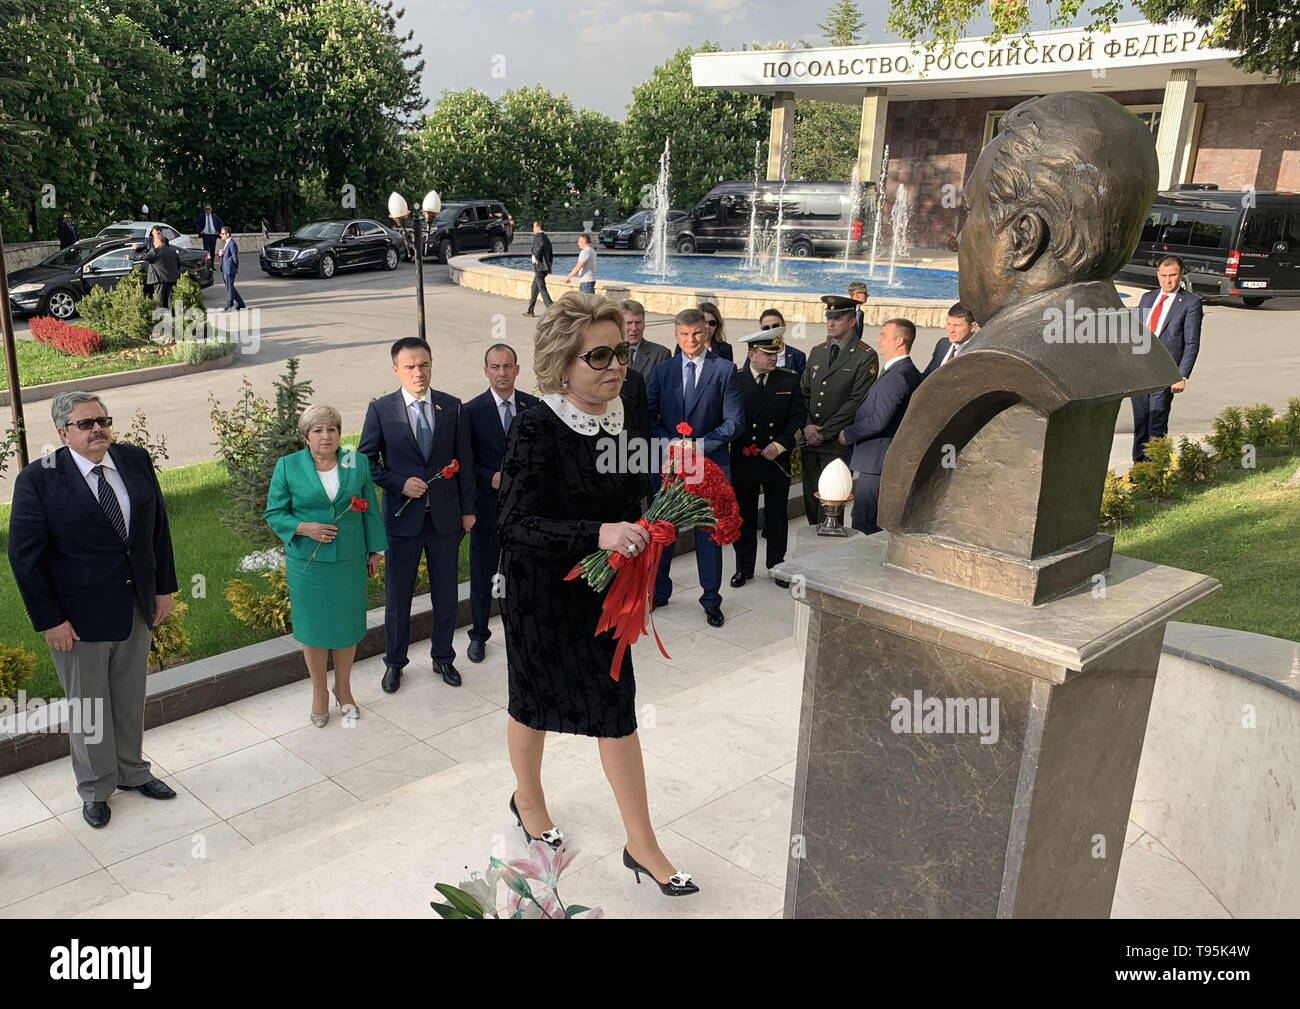 Ankara, Turkey. 16th May, 2019. ANKARA, TURKEY - MAY 16, 2019: Russian Federation Council Chairperson Valentina Matviyenko (C) and members of the Russian Federation Council during a flower laying ceremony at a bust of former Russian Ambassador to Turkey Andrei Karlov at the Russian Embassy in Ankara. Karlov was shot dead at the opening of an exhibition titled 'Russia from Kaliningrad to Kamchatka through the Eyes of Travellers' at an art gallery in the Turkish capital, Ankara, on December 19, 2016. Denis Solovykh/TASS Credit: ITAR-TASS News Agency/Alamy Live News - Stock Image